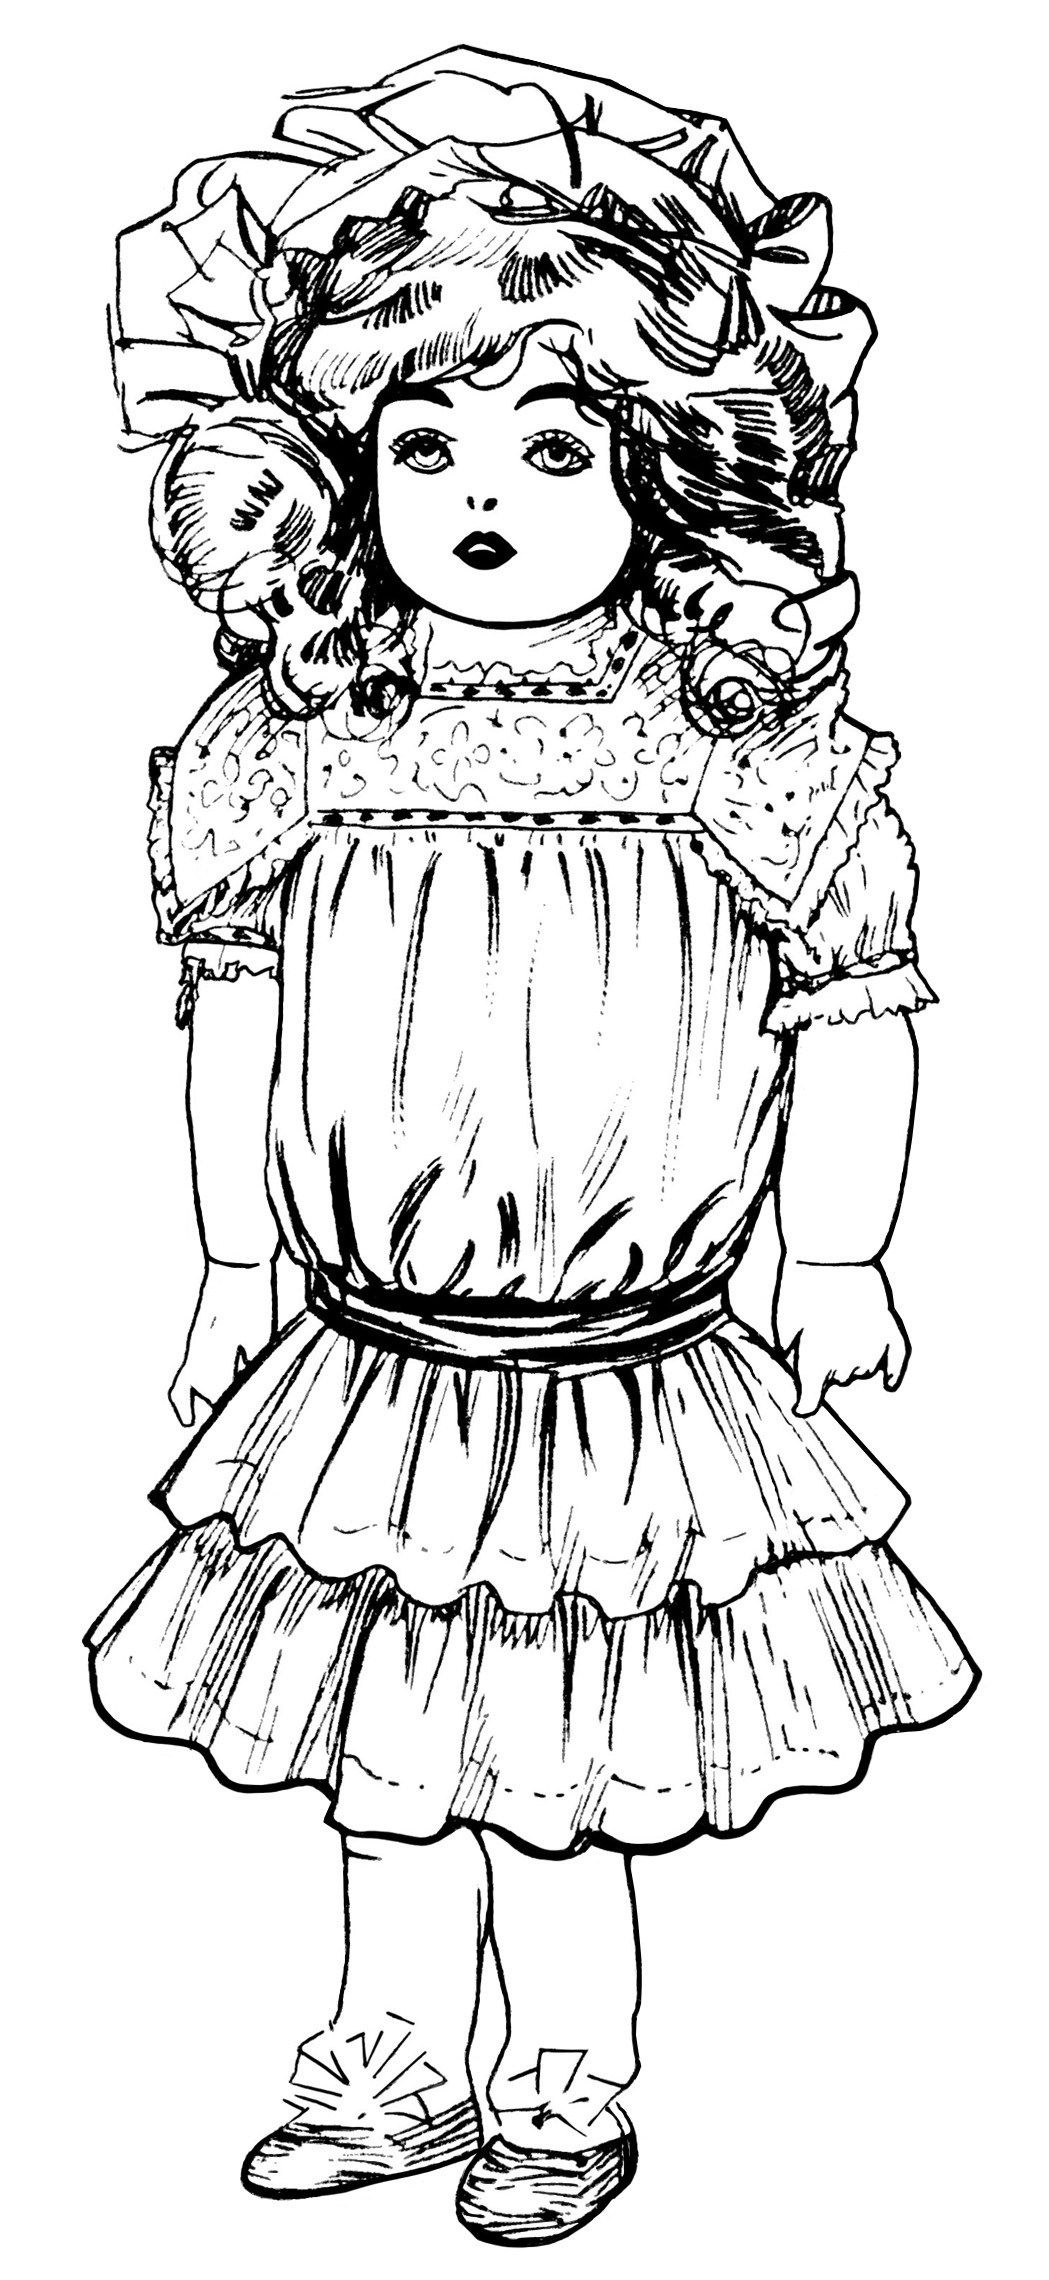 Vintage doll clipart picture library stock vintage doll clip art, Victorian toys illustration, black ... picture library stock